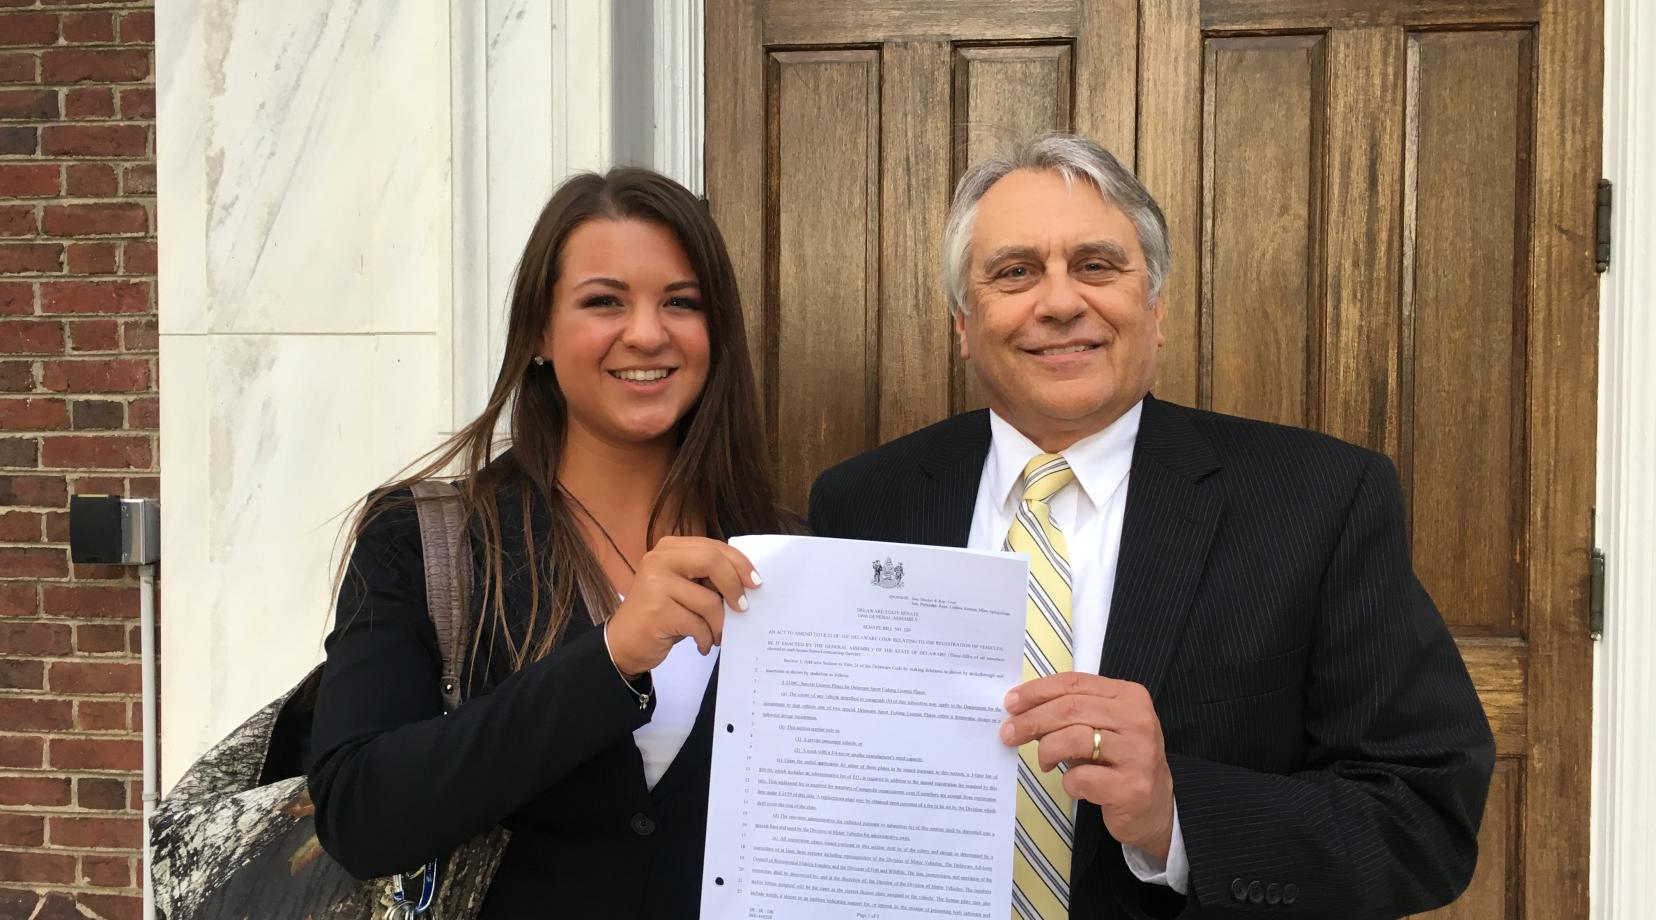 Caitlin Berchtold, a junior DSU fisheries management major, and David Saveikis, director of the state Division of Fish and Wildlife, hold Senate Bill 220 after the House unanimously passed it on June 27. Ms. Berchtold proposed the legislation, which will create license plates of which the proceeds will benefit fisheries research and recreational fisheries.